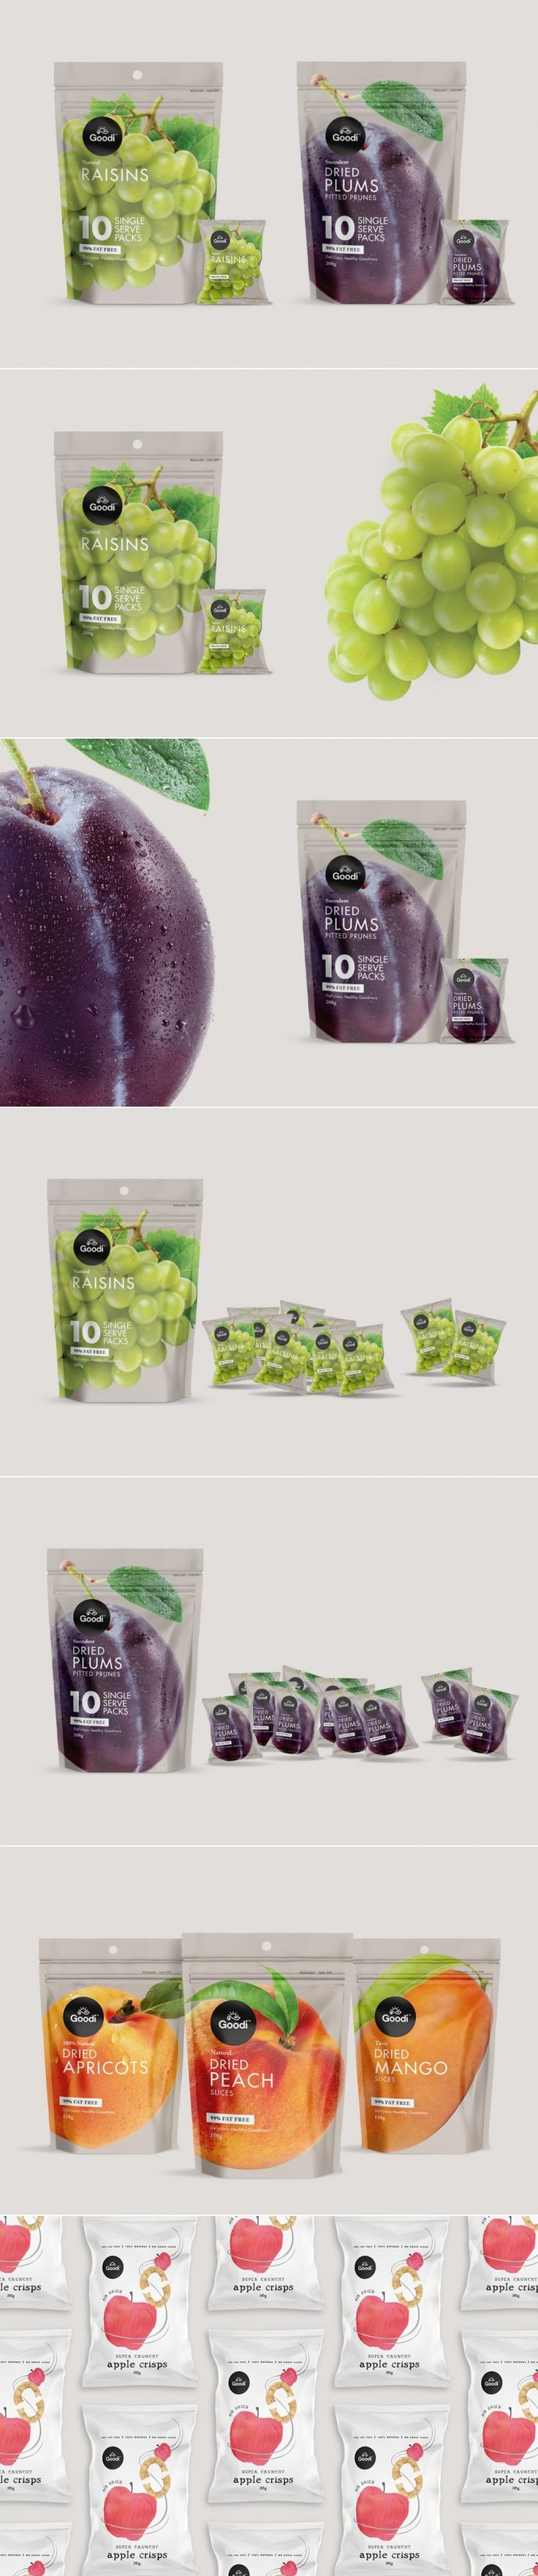 """Feel """"Goodi"""" With These Healthy Fruit Snacks — The Dieline 